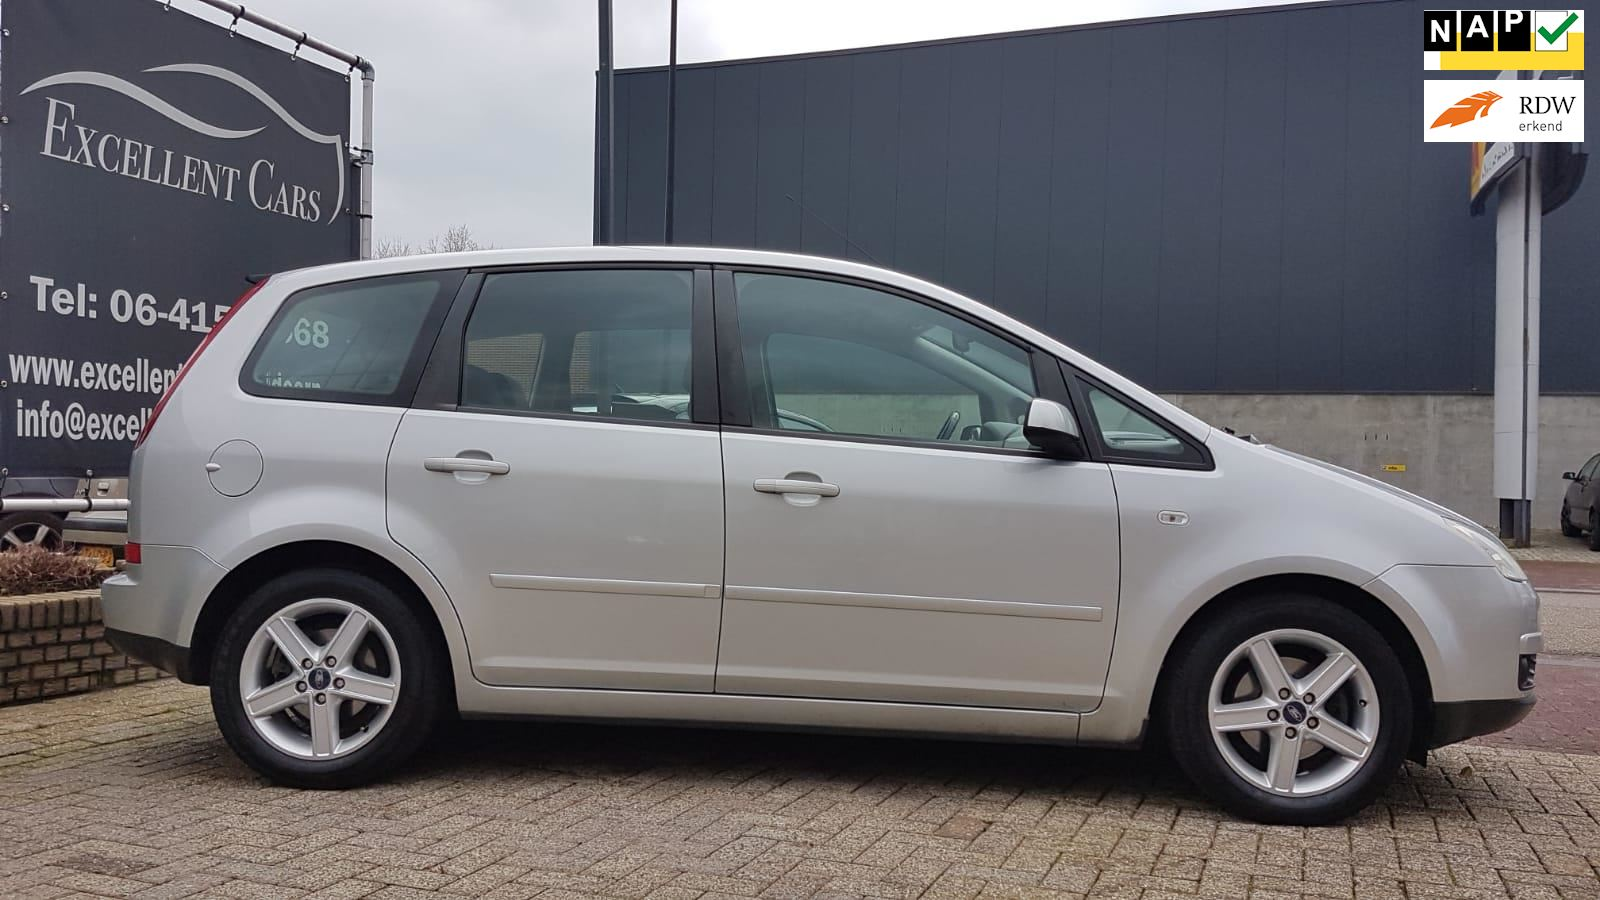 Ford Focus C-Max occasion - Excellent Cars